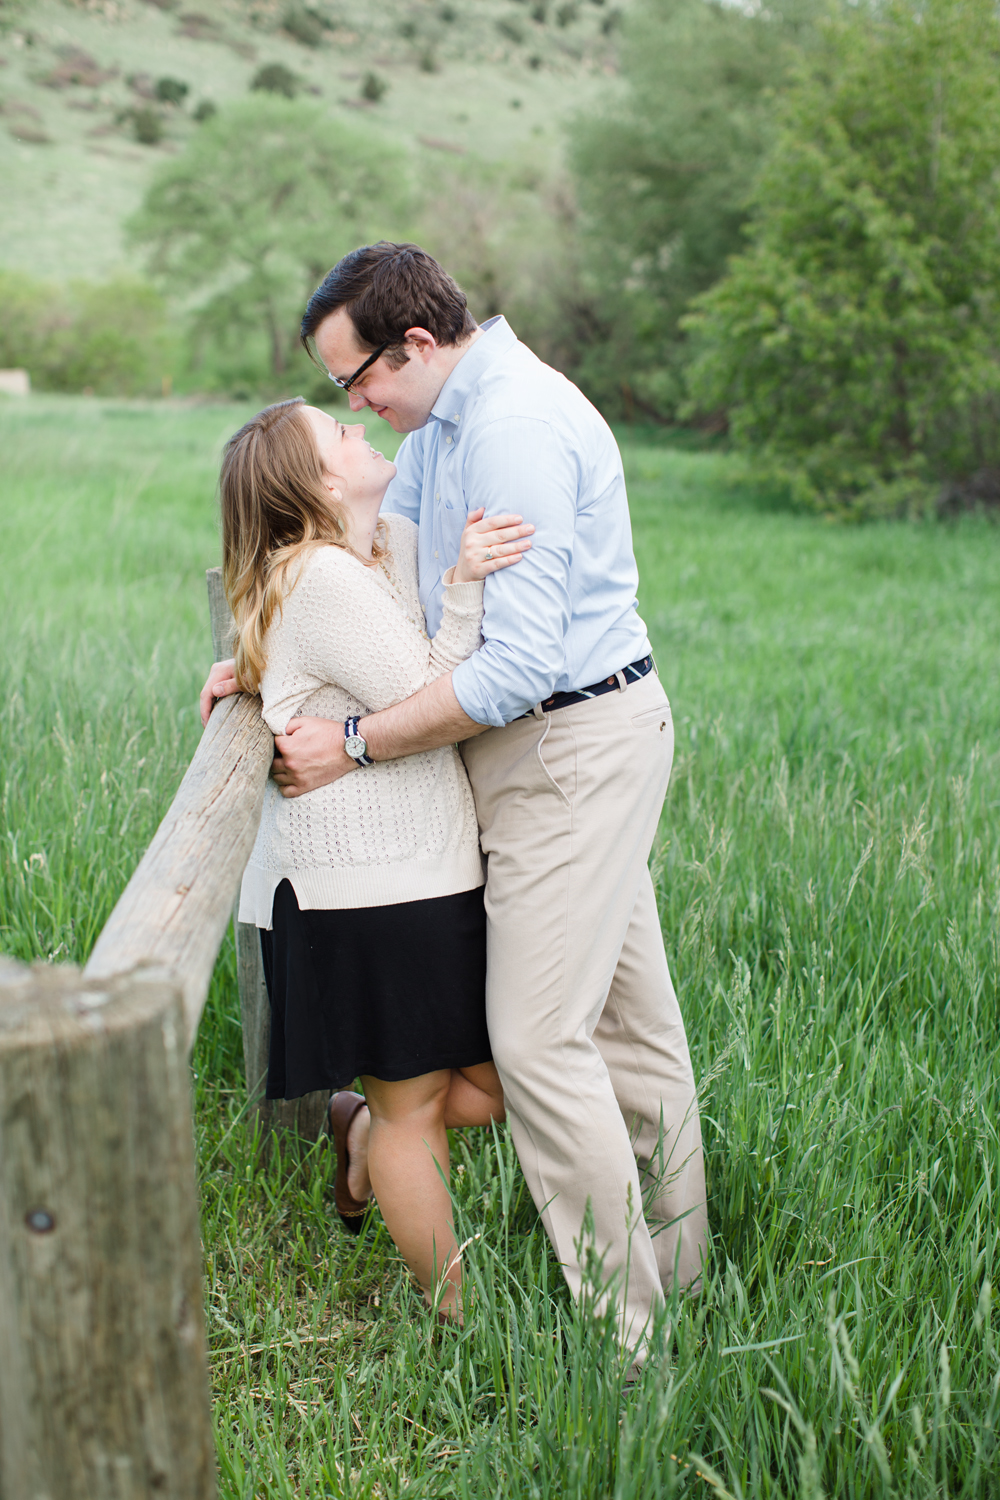 MatthewsPark_Colorado_Engagement_RobinCainPhotography_08.jpg